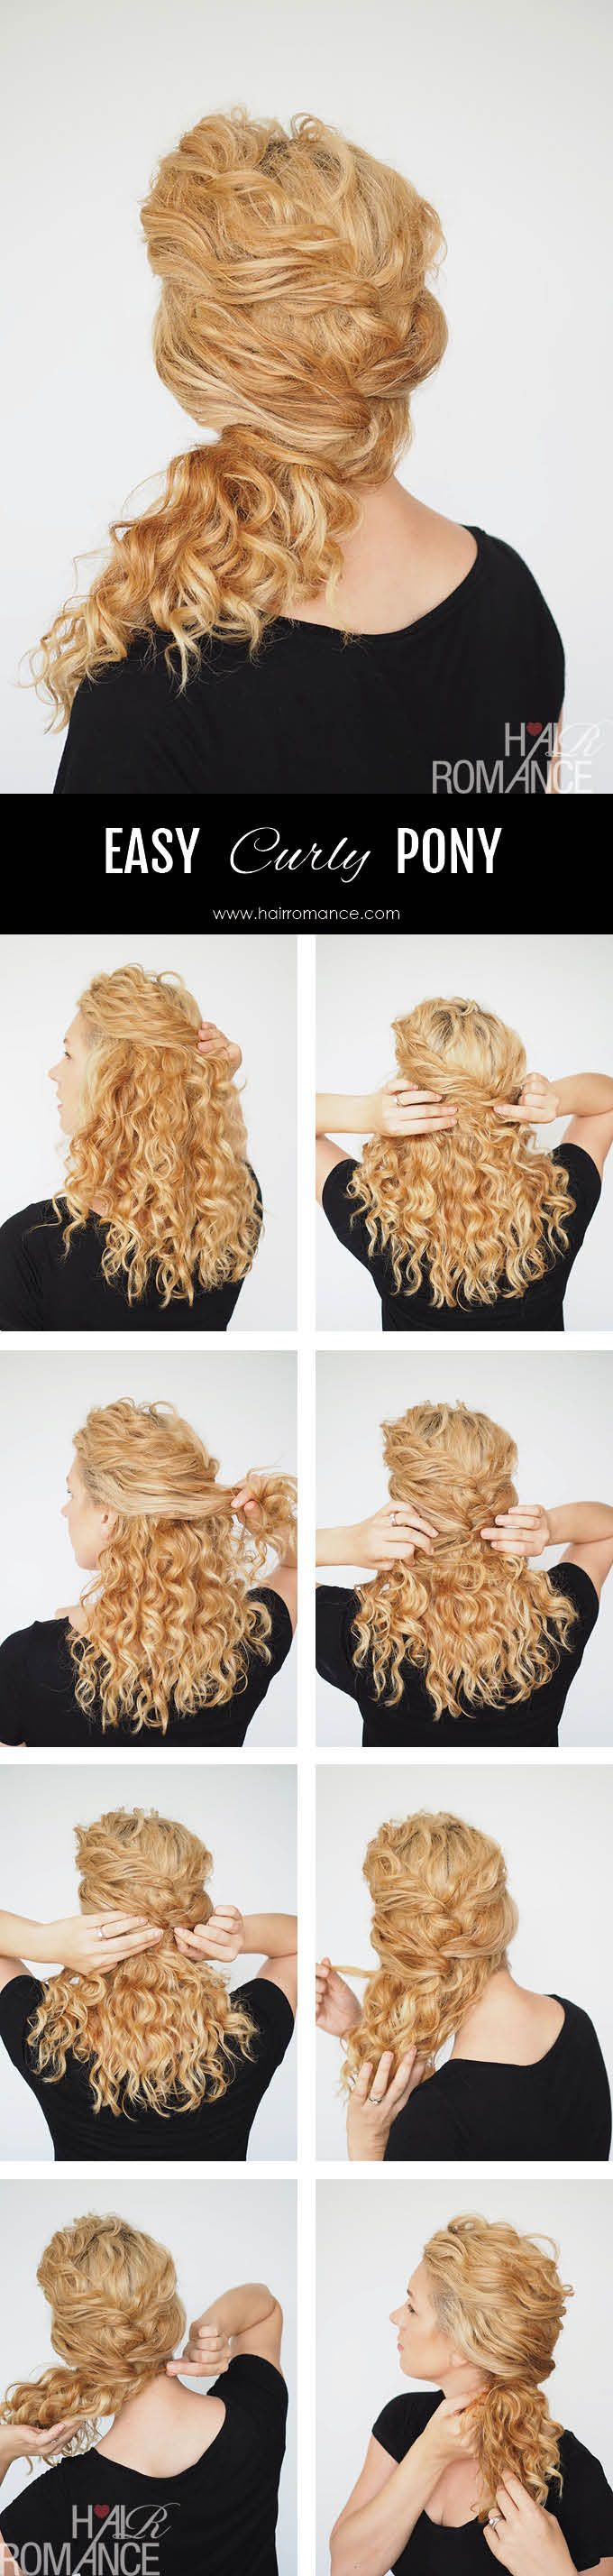 Curly hair tutorial u easy ponytail with a twist beauty